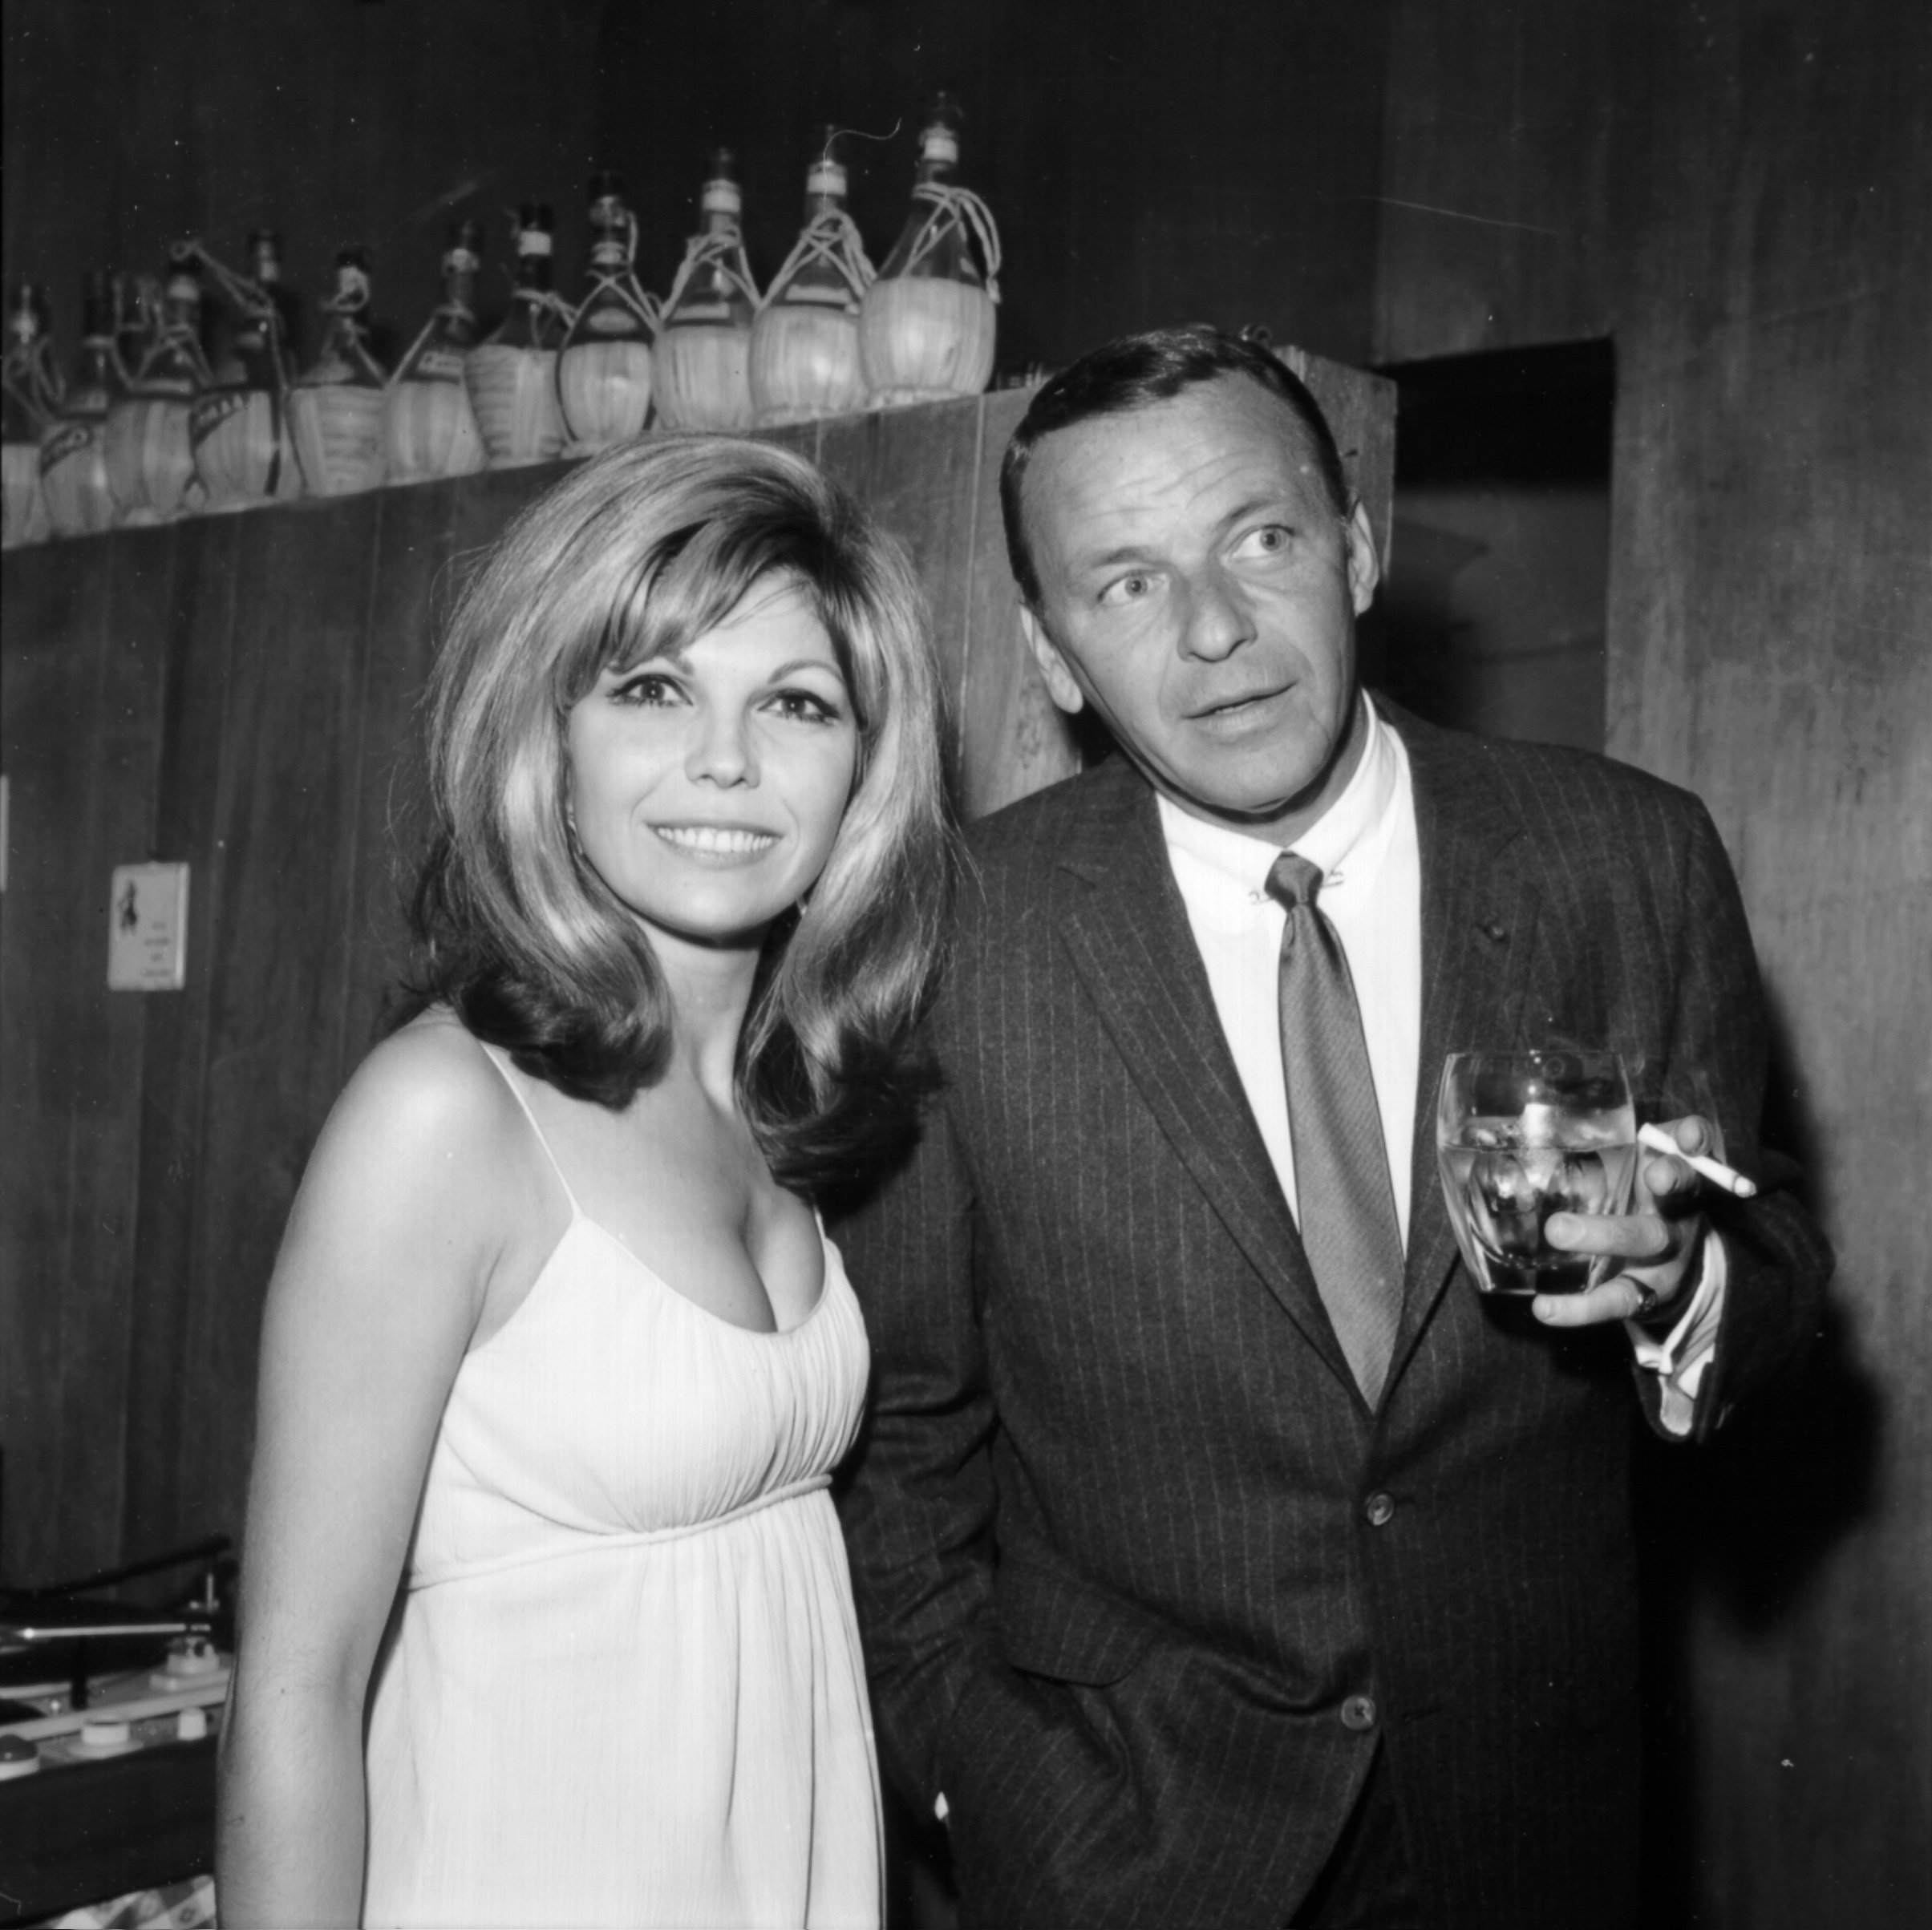 Pop singer Frank Sinatra enjoys a cocktail at an event with his daughter singer Nancy Sinatra in circa 1967 | Photo: Getty Images